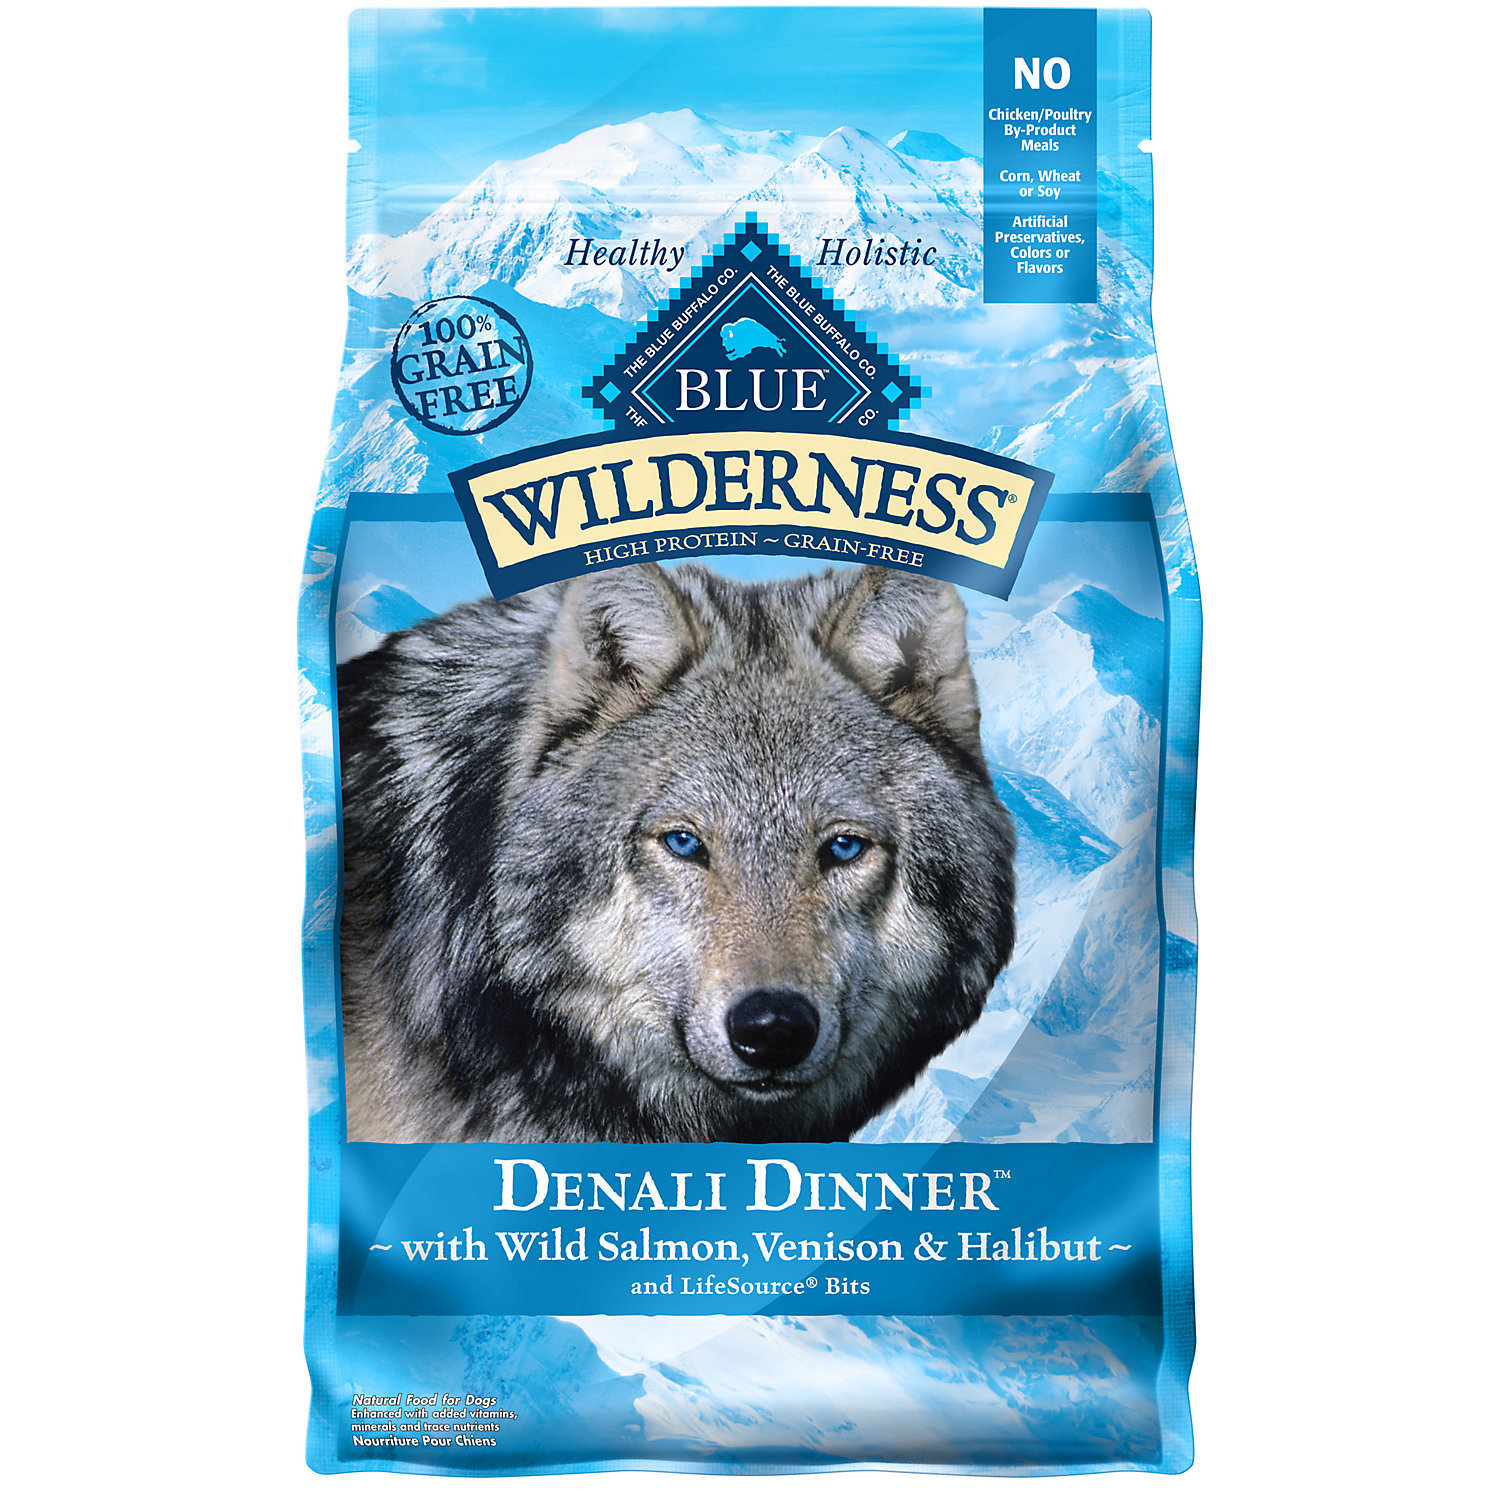 BLUE Wilderness Denali Dinner with Wild Salmon, Venison, & Halibut Dry Dog Food, 4 lb.  (8/18) (A.J2)